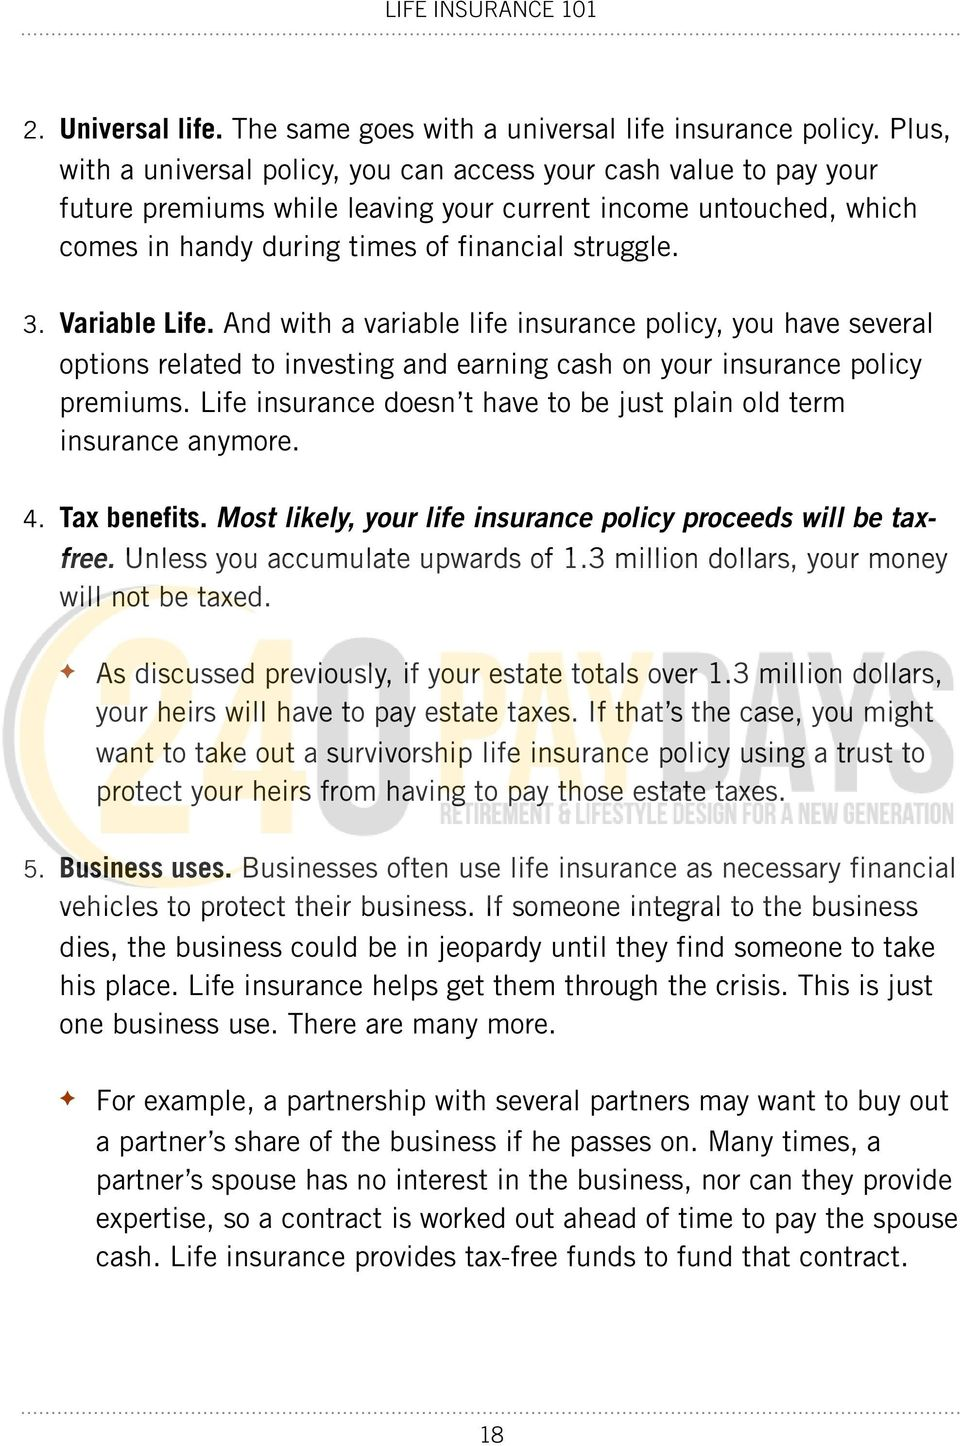 Variable Life. And with a variable life insurance policy, you have several options related to investing and earning cash on your insurance policy premiums.